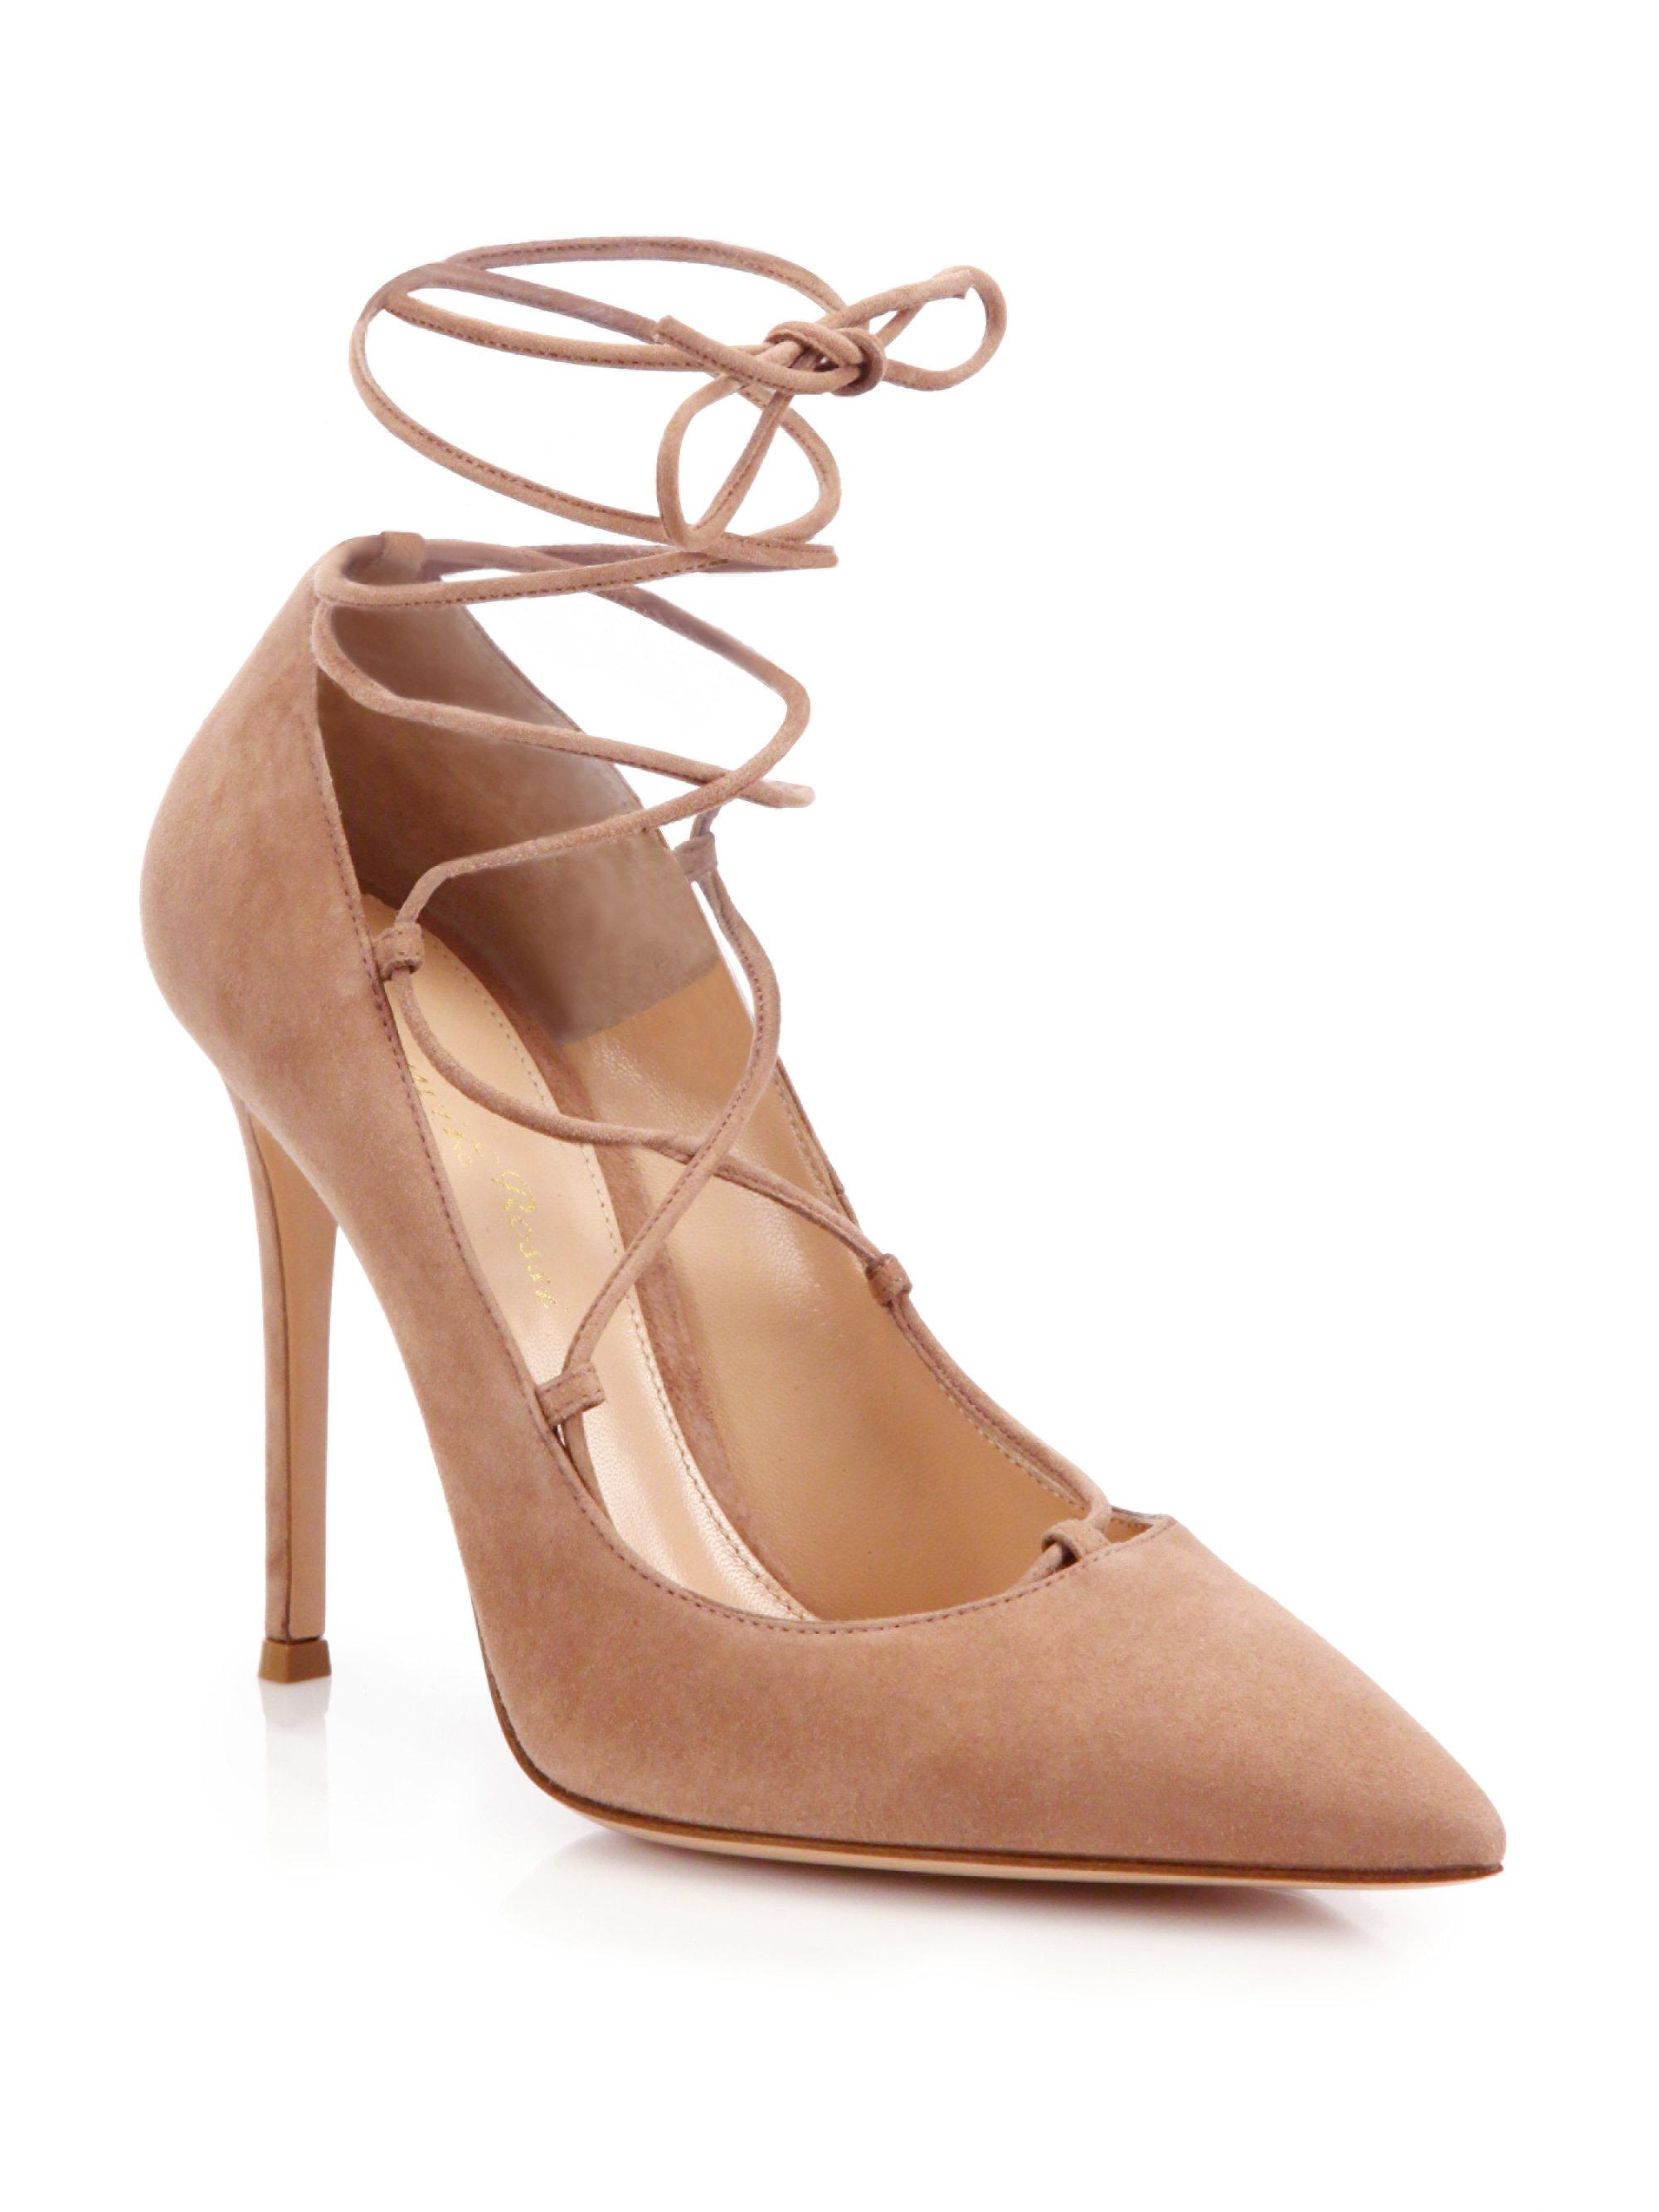 Clearance Free Shipping Pumps Femi suede blue Gianvito Rossi Low Shipping Fee Sale Online Cheap Eastbay ZjlFJ